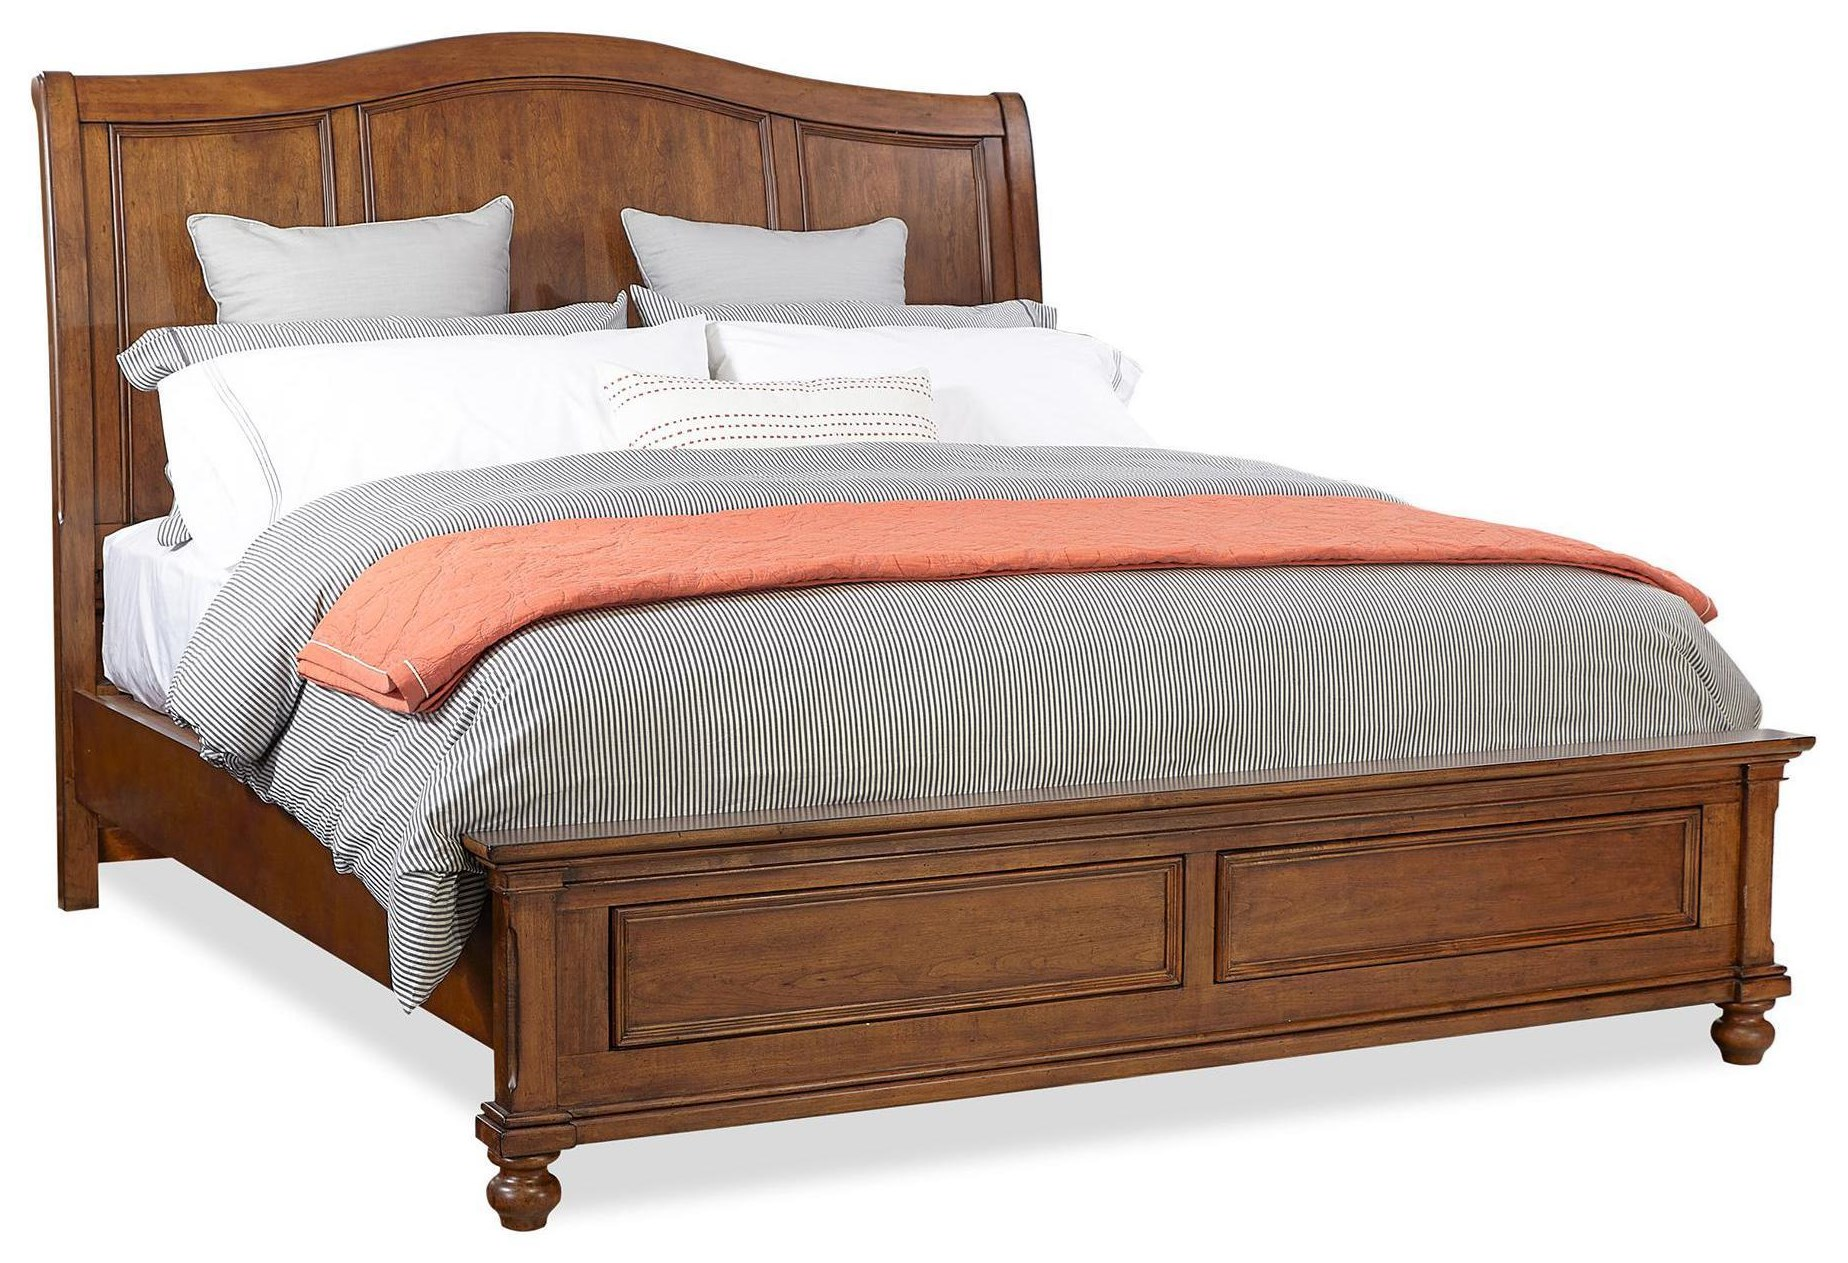 Oxford Queen Bed by Aspenhome at HomeWorld Furniture